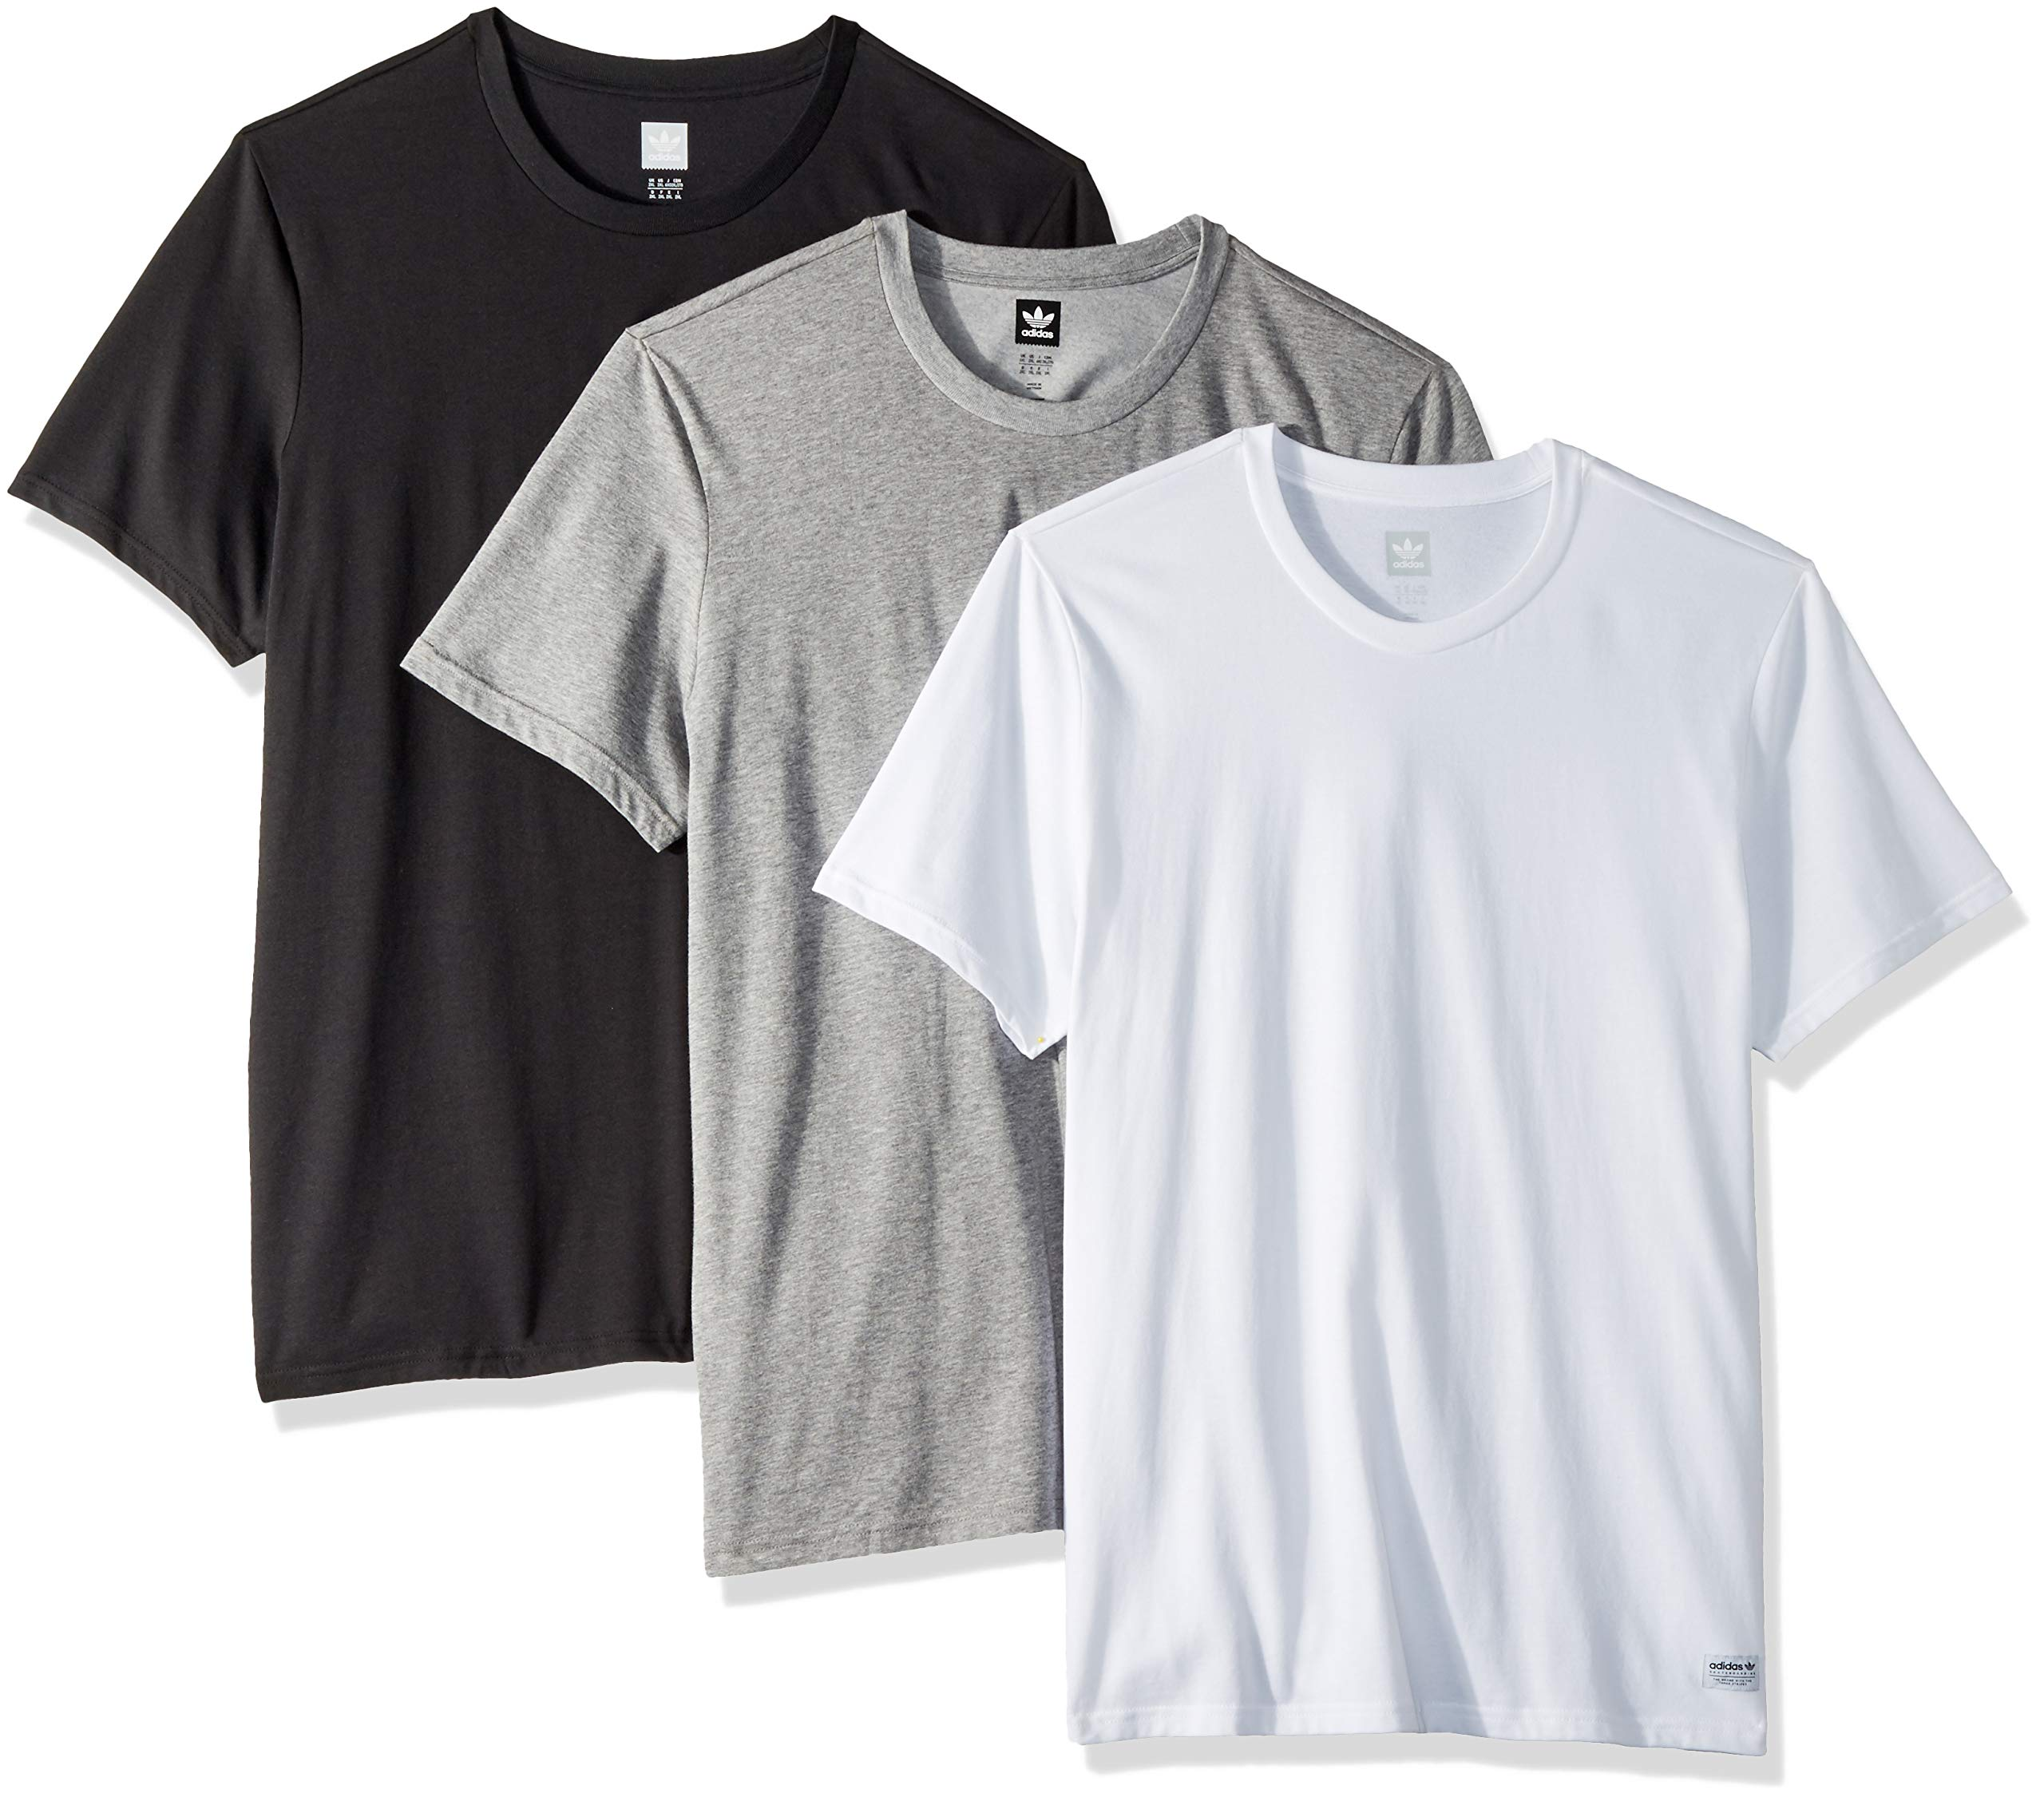 adidas Originals Men's 3 Pack Tees, Heather/White/Black XX-Large by adidas Originals (Image #1)